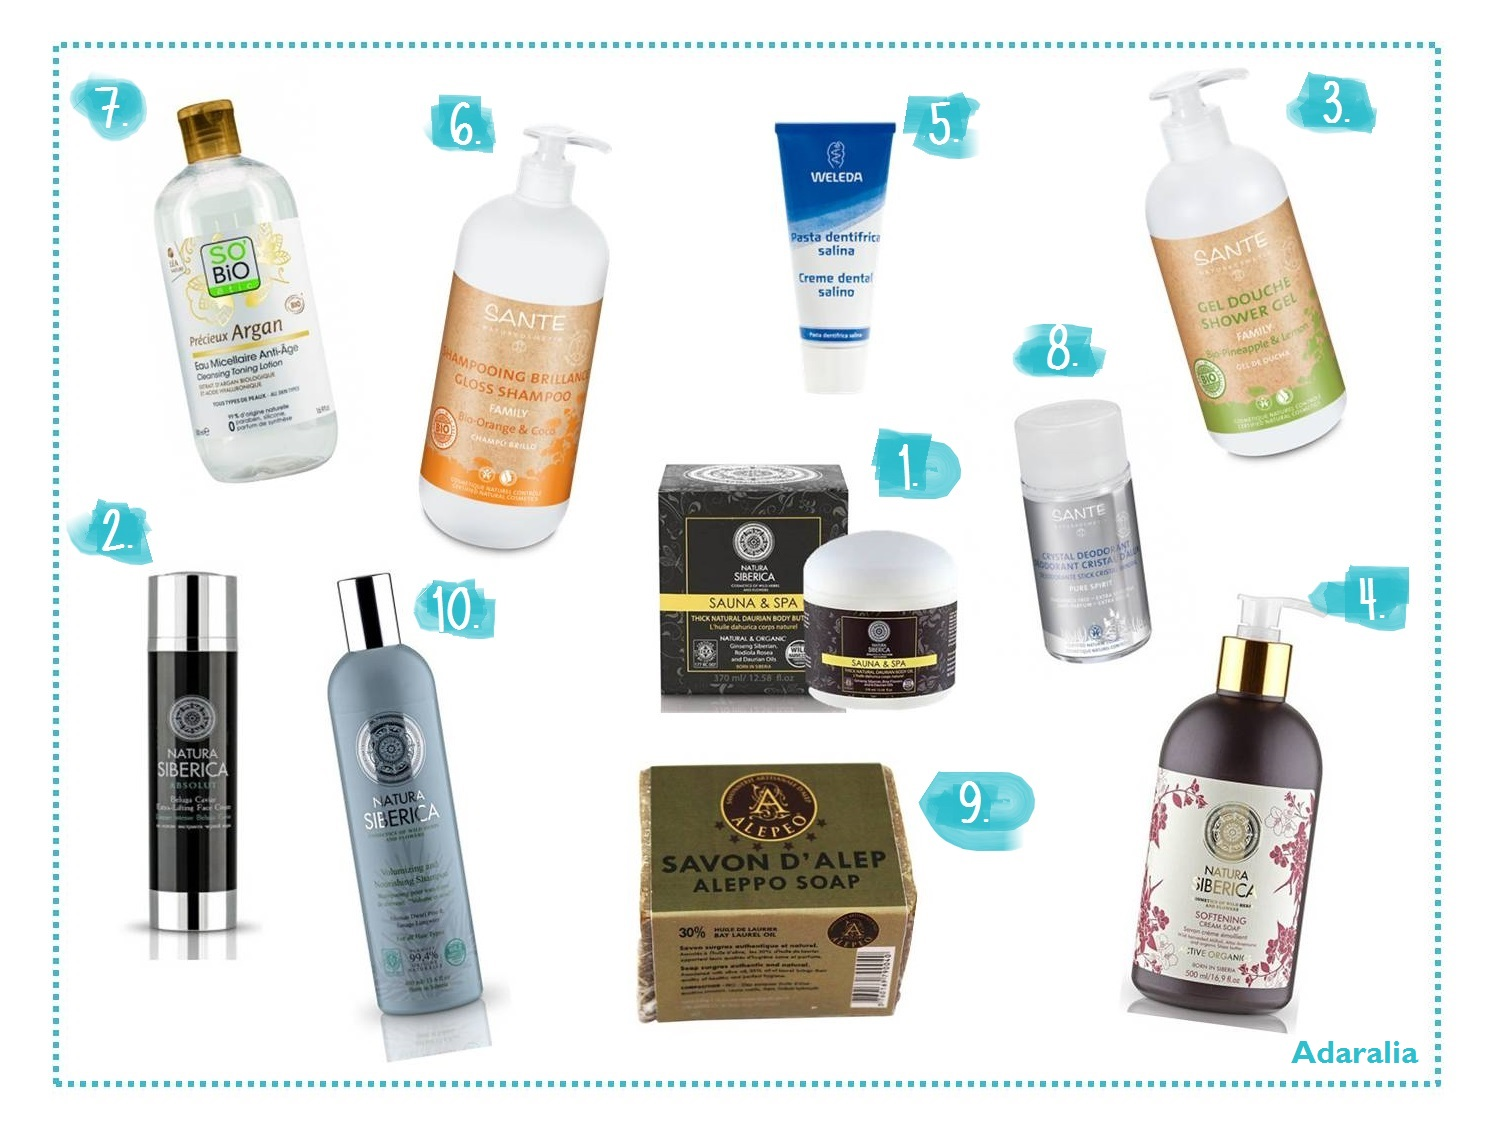 TOP 10 productos_Adaralia